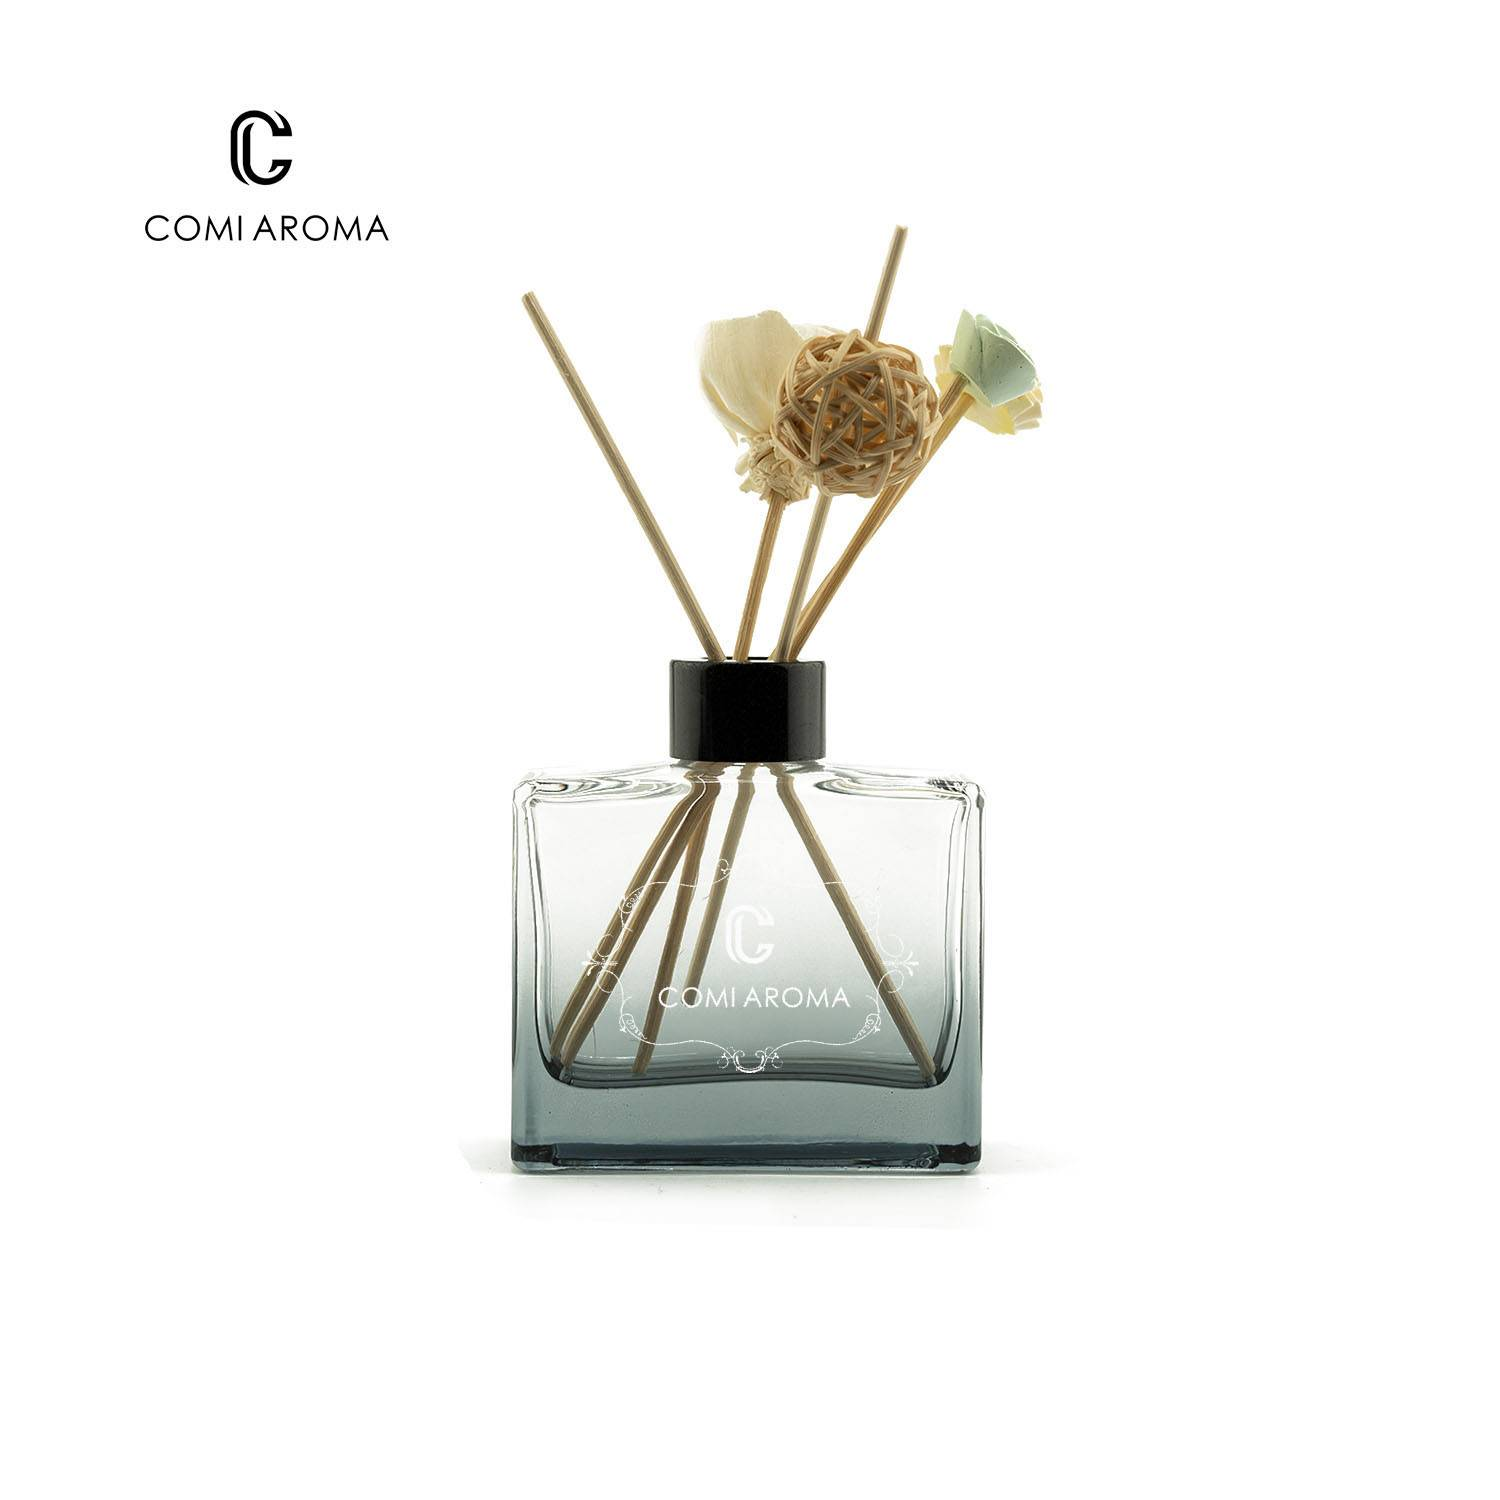 100ml Aroma Reed Diffuser Glass Bottle Featured Image